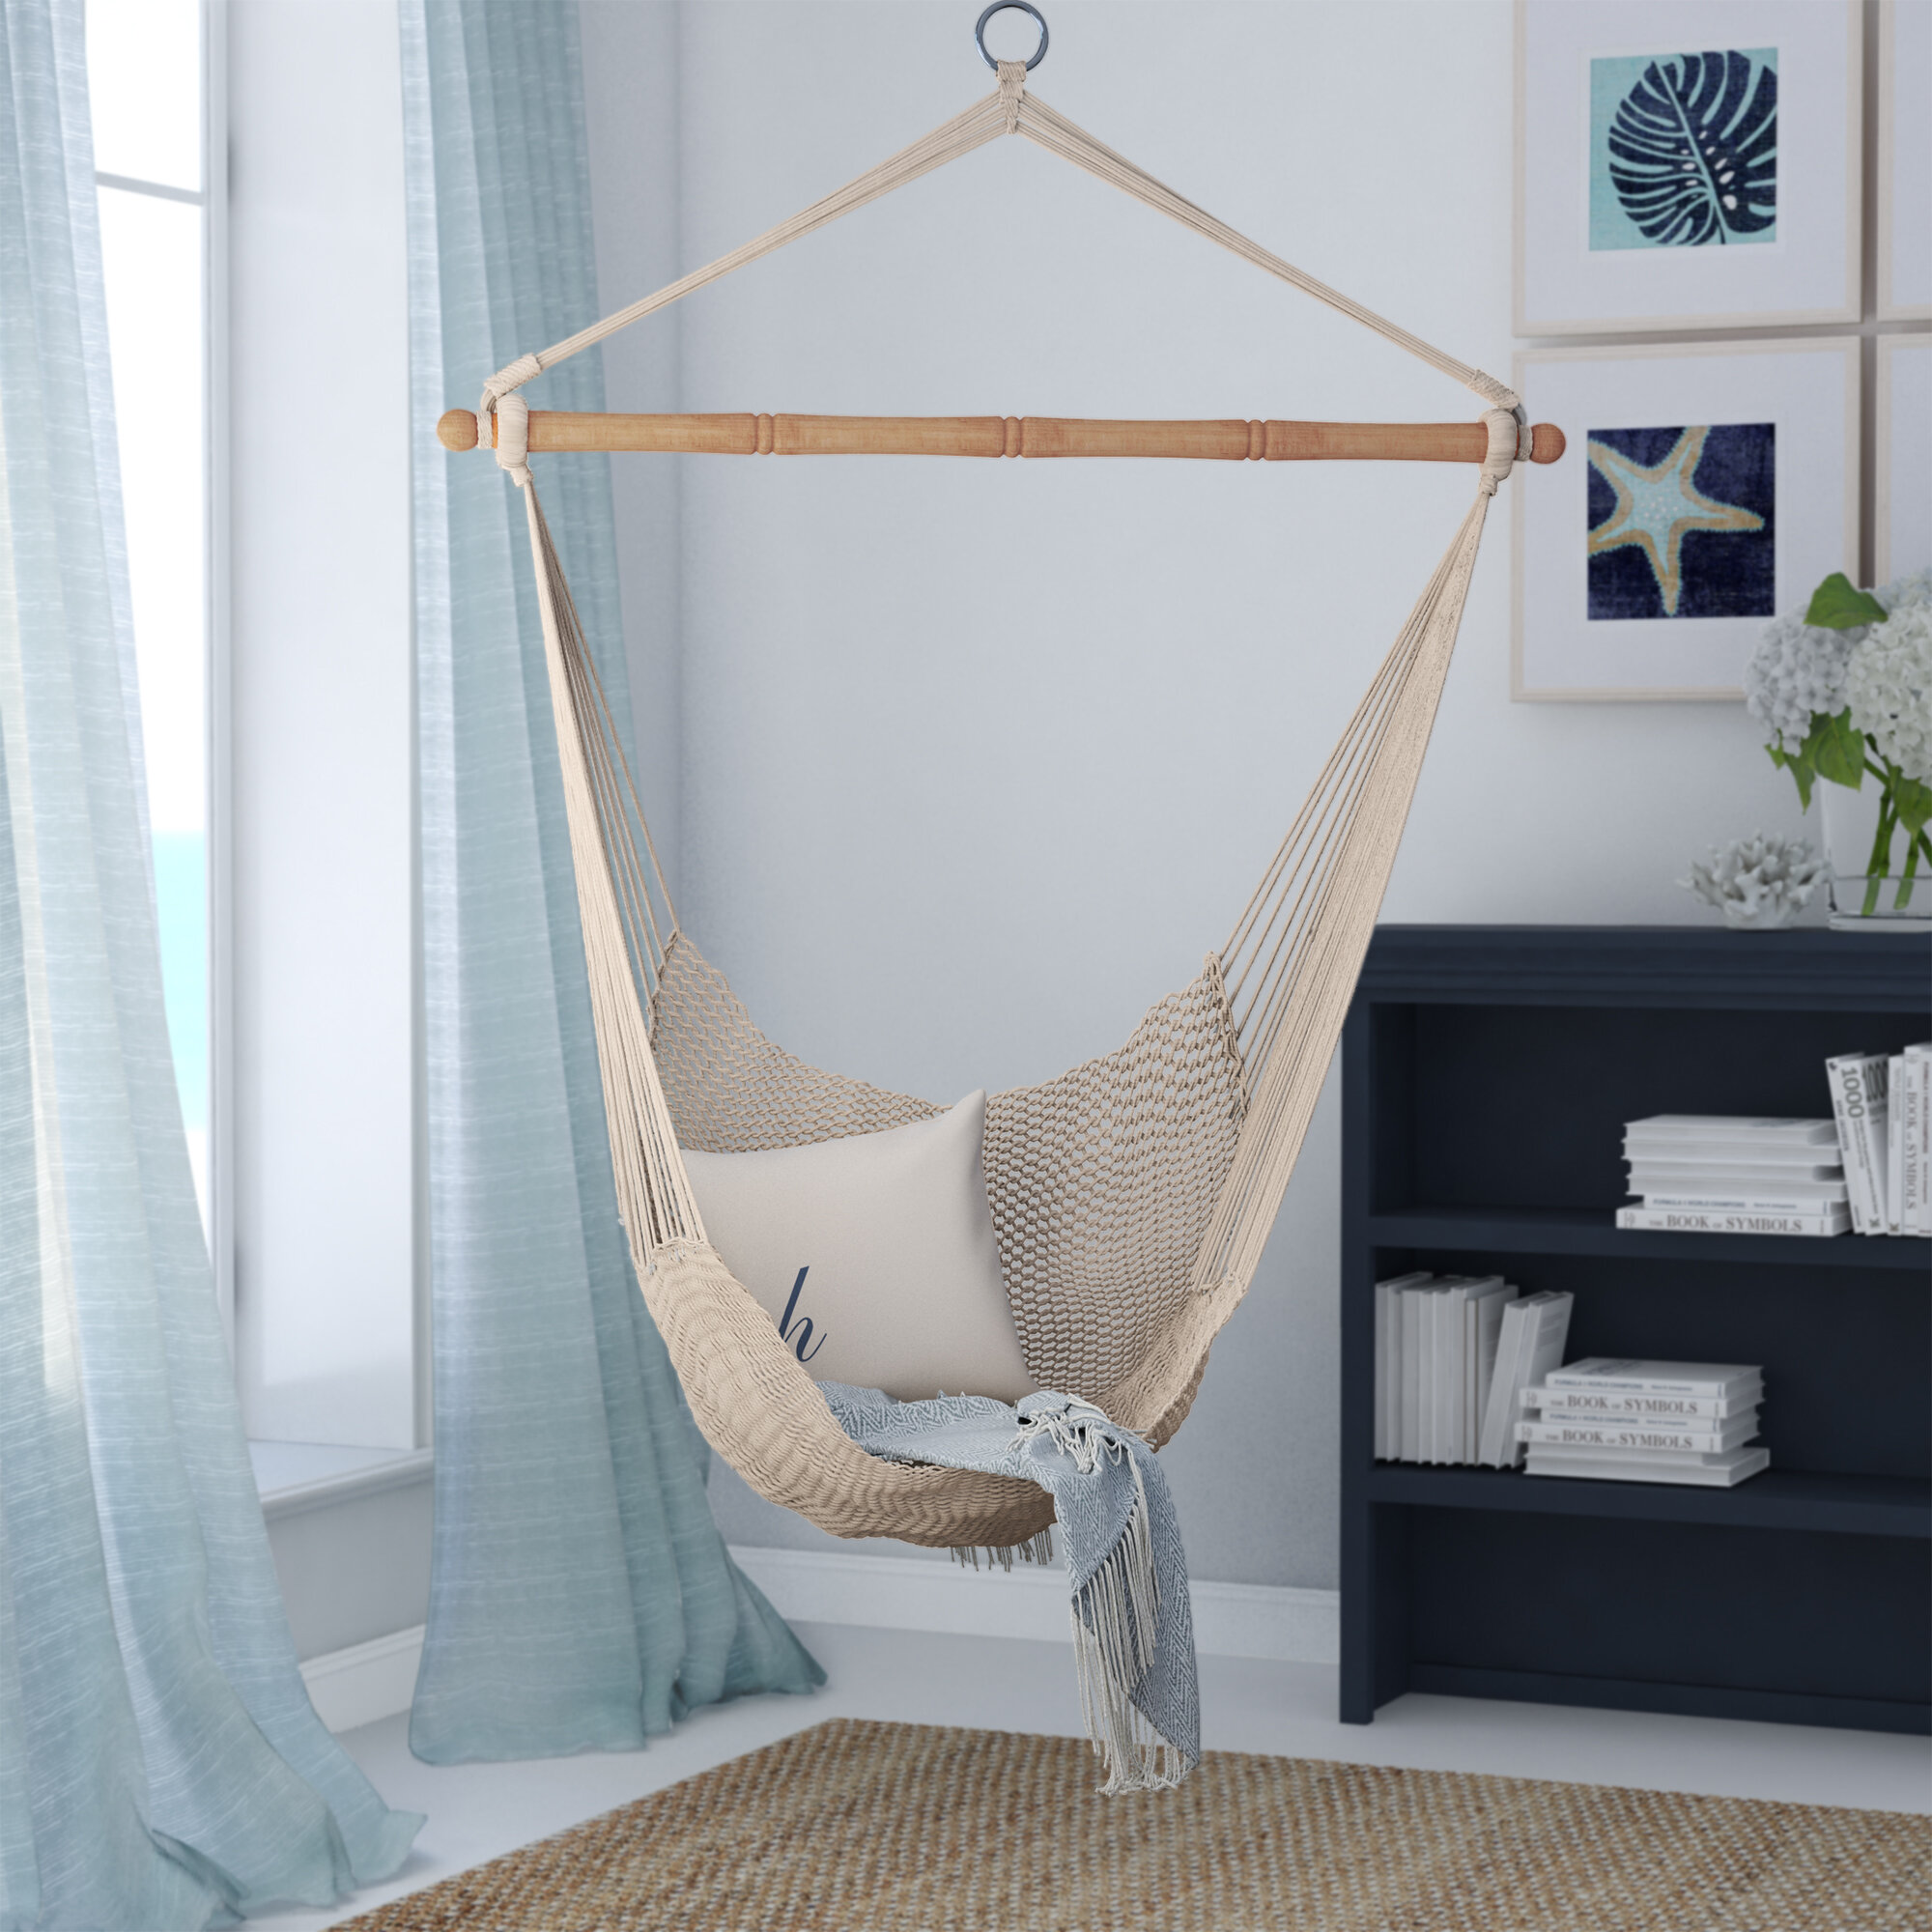 diy indoor bed uncategorized for swing us marvelous baby hammock and style stand ideas pict nsyd